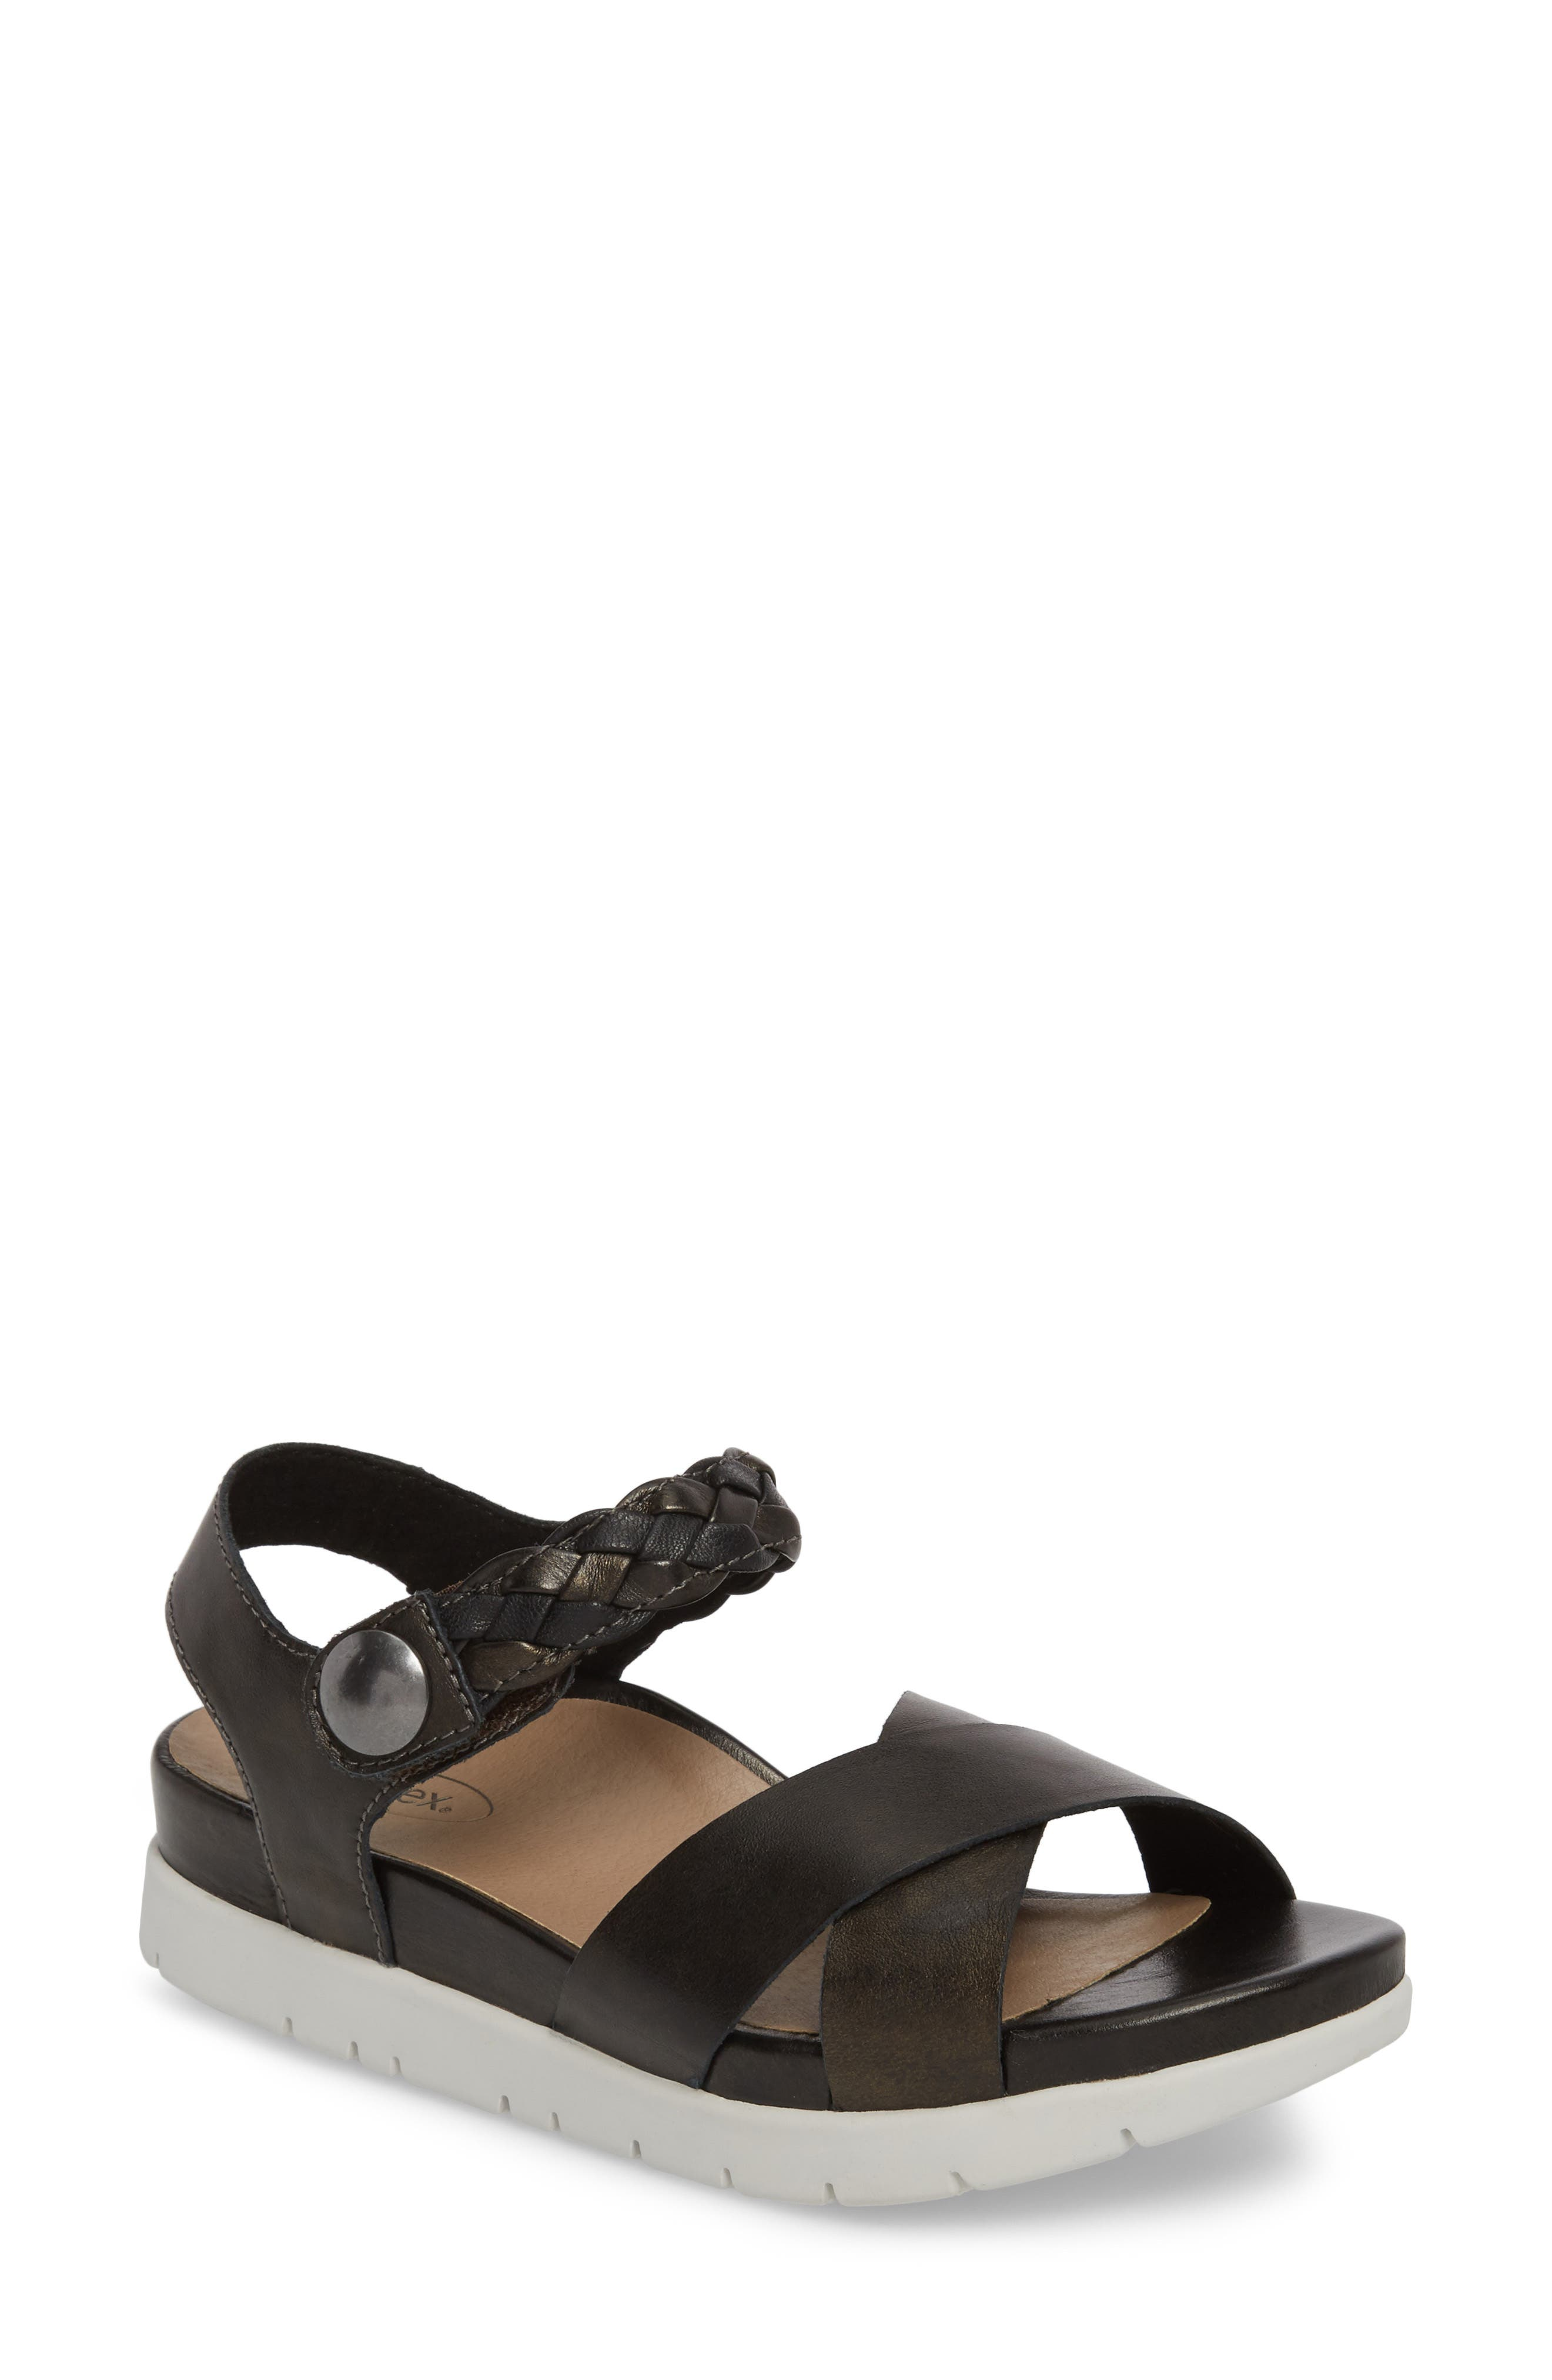 Piper Sandal,                         Main,                         color, BLACK LEATHER